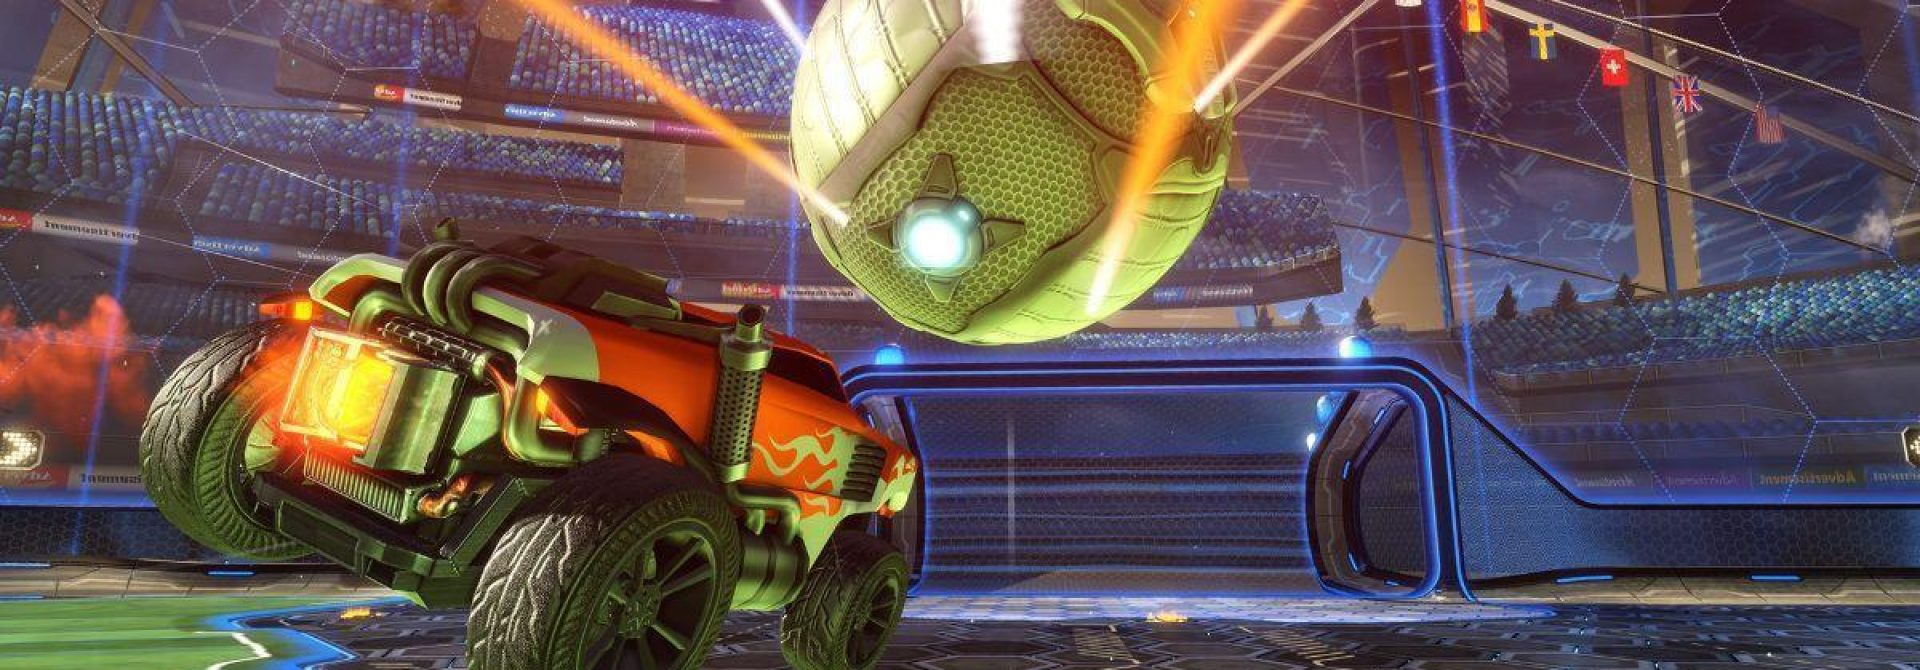 Rocket league Fall Update Brings Plenty Of New Content And Features